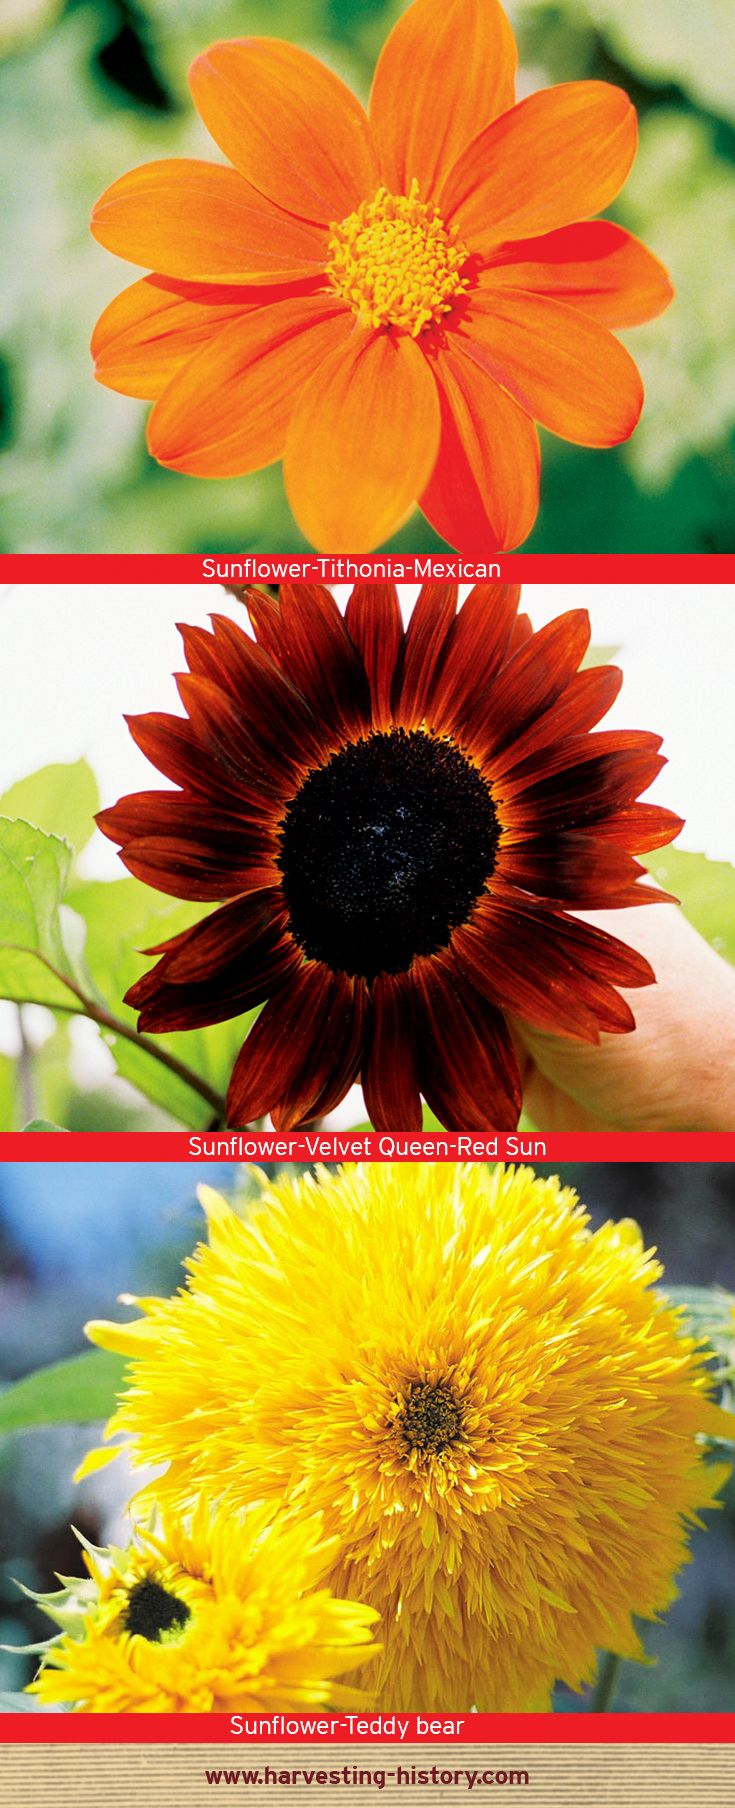 Sunflowers Are A Uniquely American Flower Native To The Southeastern United States But Wound Up In South America Where It B Sunflower Flowers Native American